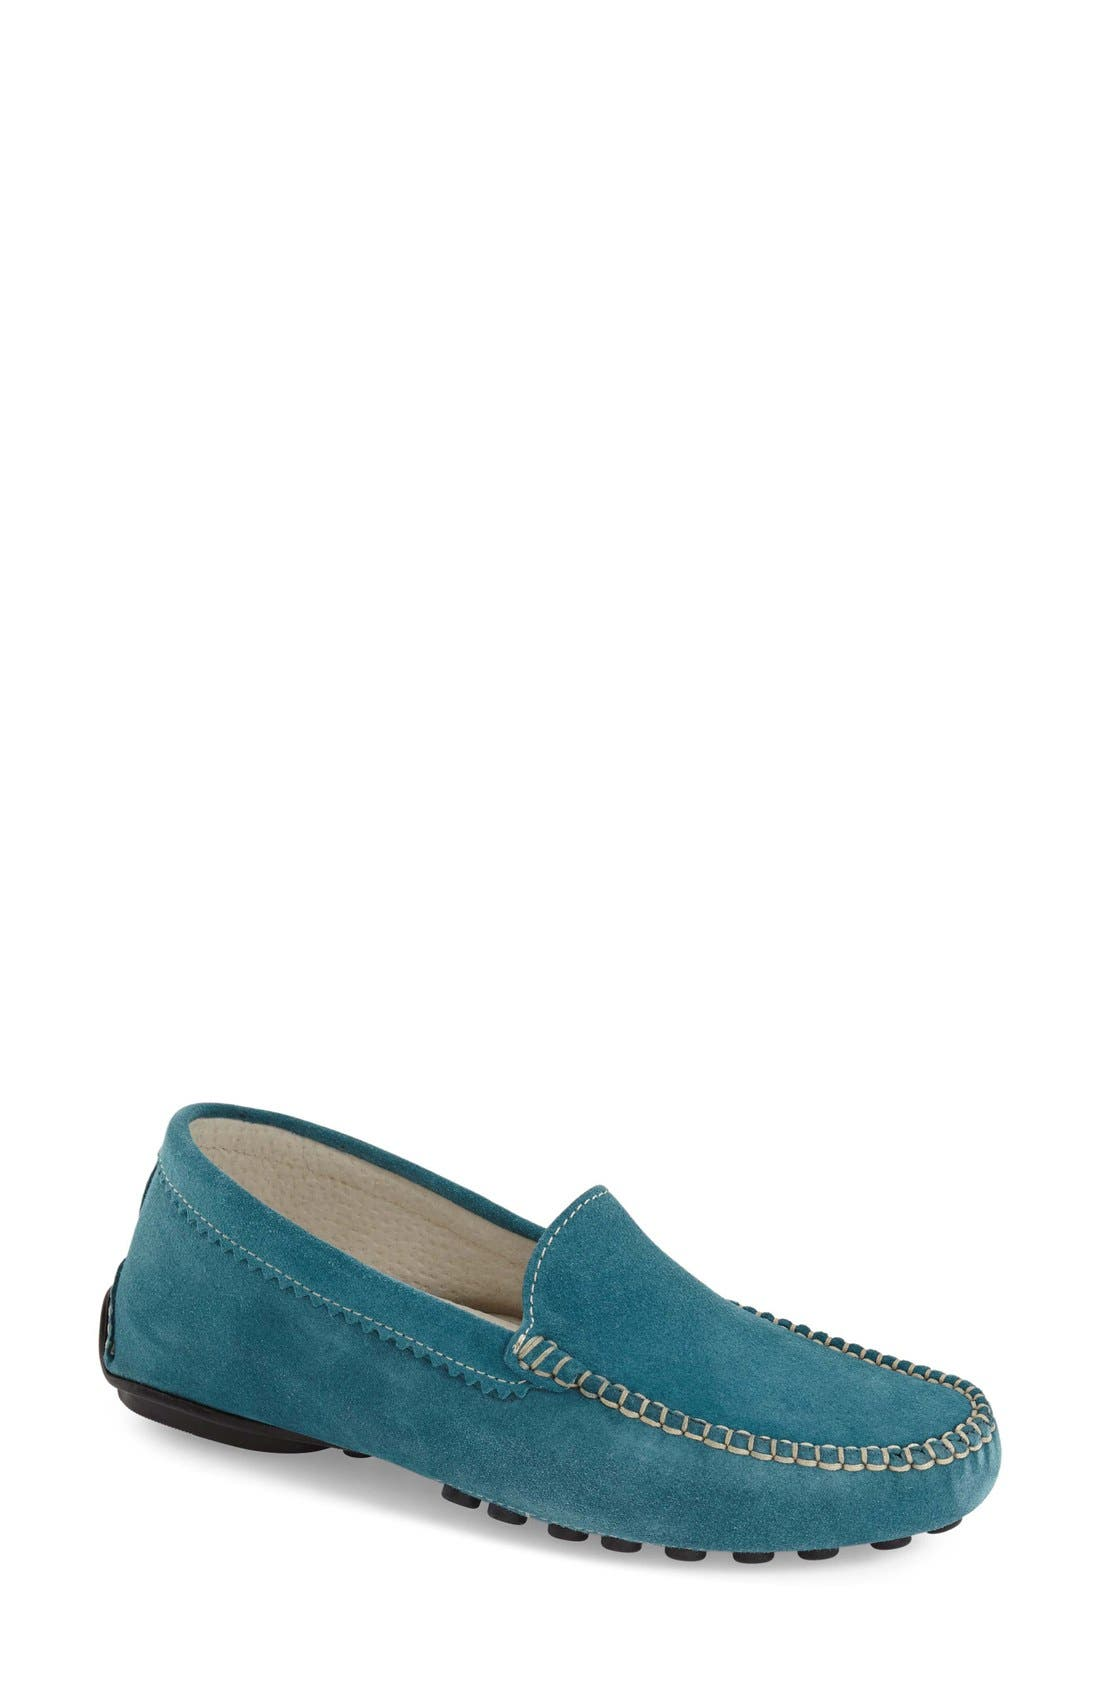 FRENCH SOLE 'Stella' Loafer